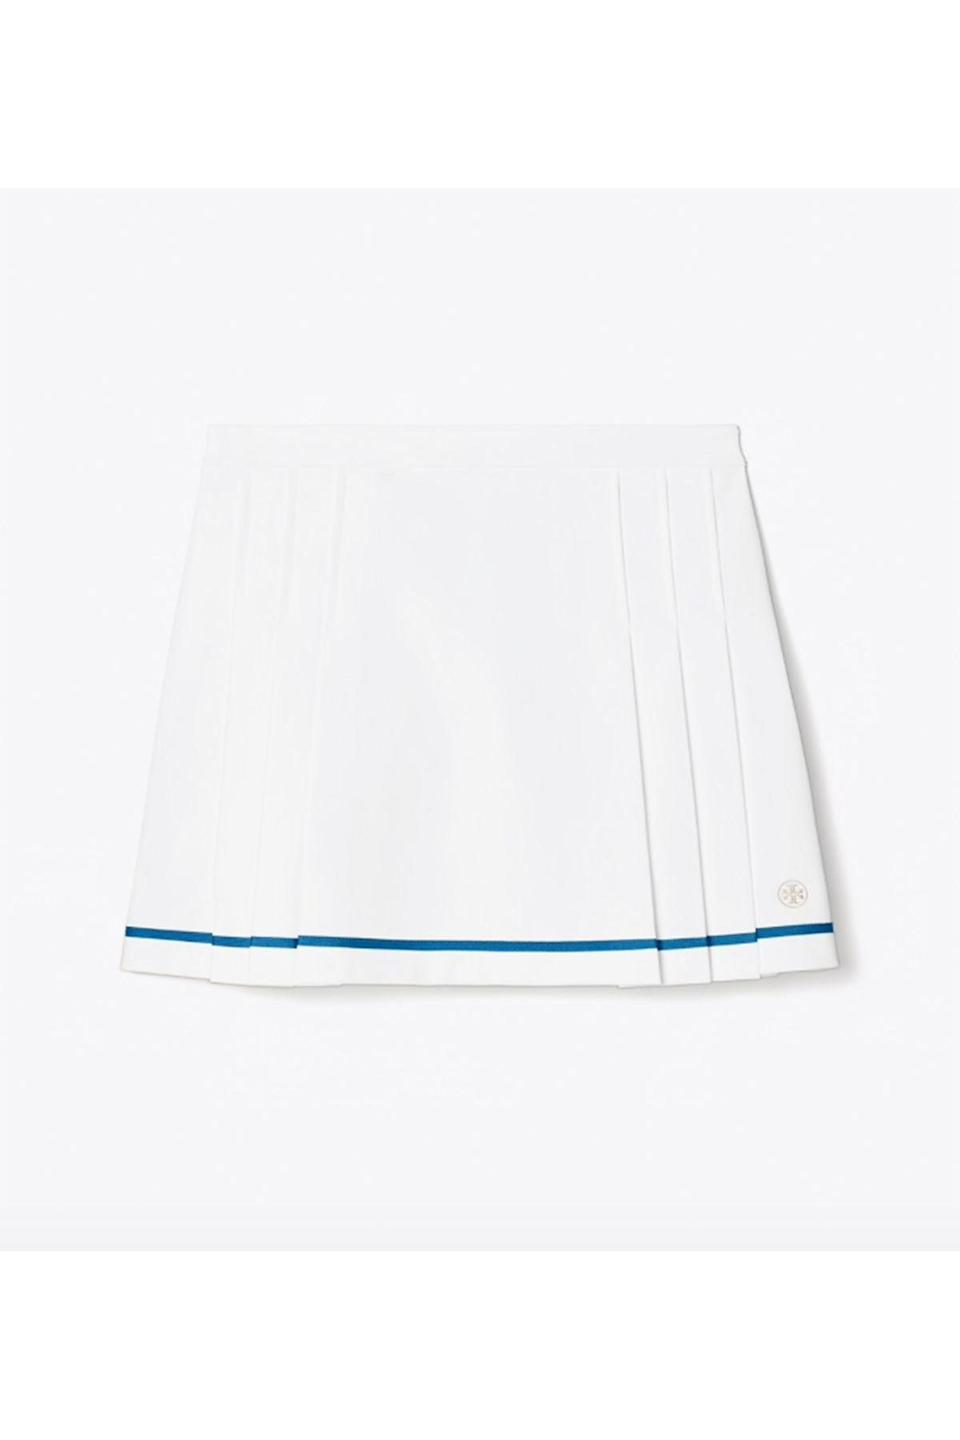 """<p><strong>Tory Sport</strong></p><p>toryburch.com</p><p><strong>$158.00</strong></p><p><a href=""""https://go.redirectingat.com?id=74968X1596630&url=https%3A%2F%2Fwww.toryburch.com%2Ftech-twill-pleated-tennis-skirt%2F73430.html&sref=https%3A%2F%2Fwww.townandcountrymag.com%2Fstyle%2Ffashion-trends%2Fg36717600%2Fbest-tennis-skirts%2F"""" rel=""""nofollow noopener"""" target=""""_blank"""" data-ylk=""""slk:Shop Now"""" class=""""link rapid-noclick-resp"""">Shop Now</a></p><p>Thanks to sharp tailoring, a pretty A-line silhouette, and elegant pleat details, no one will know you're wearing a tennis skirt.</p>"""